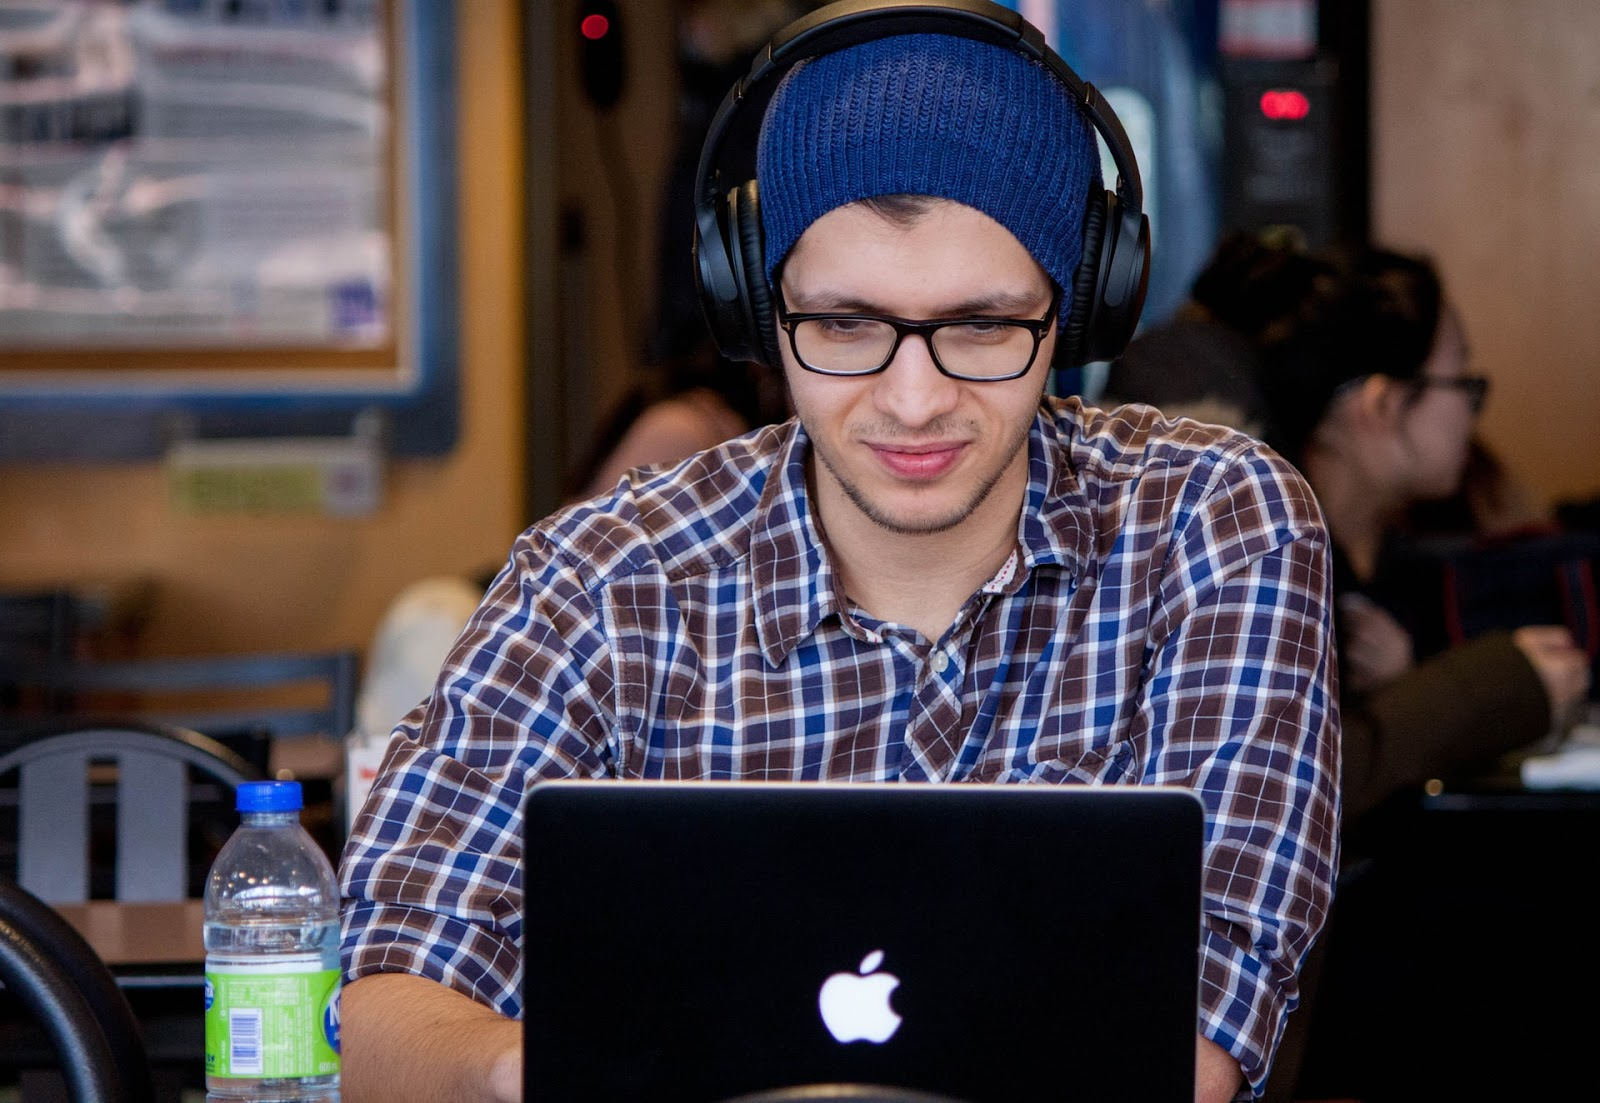 a man with black headphones on a computer in a cafeteria